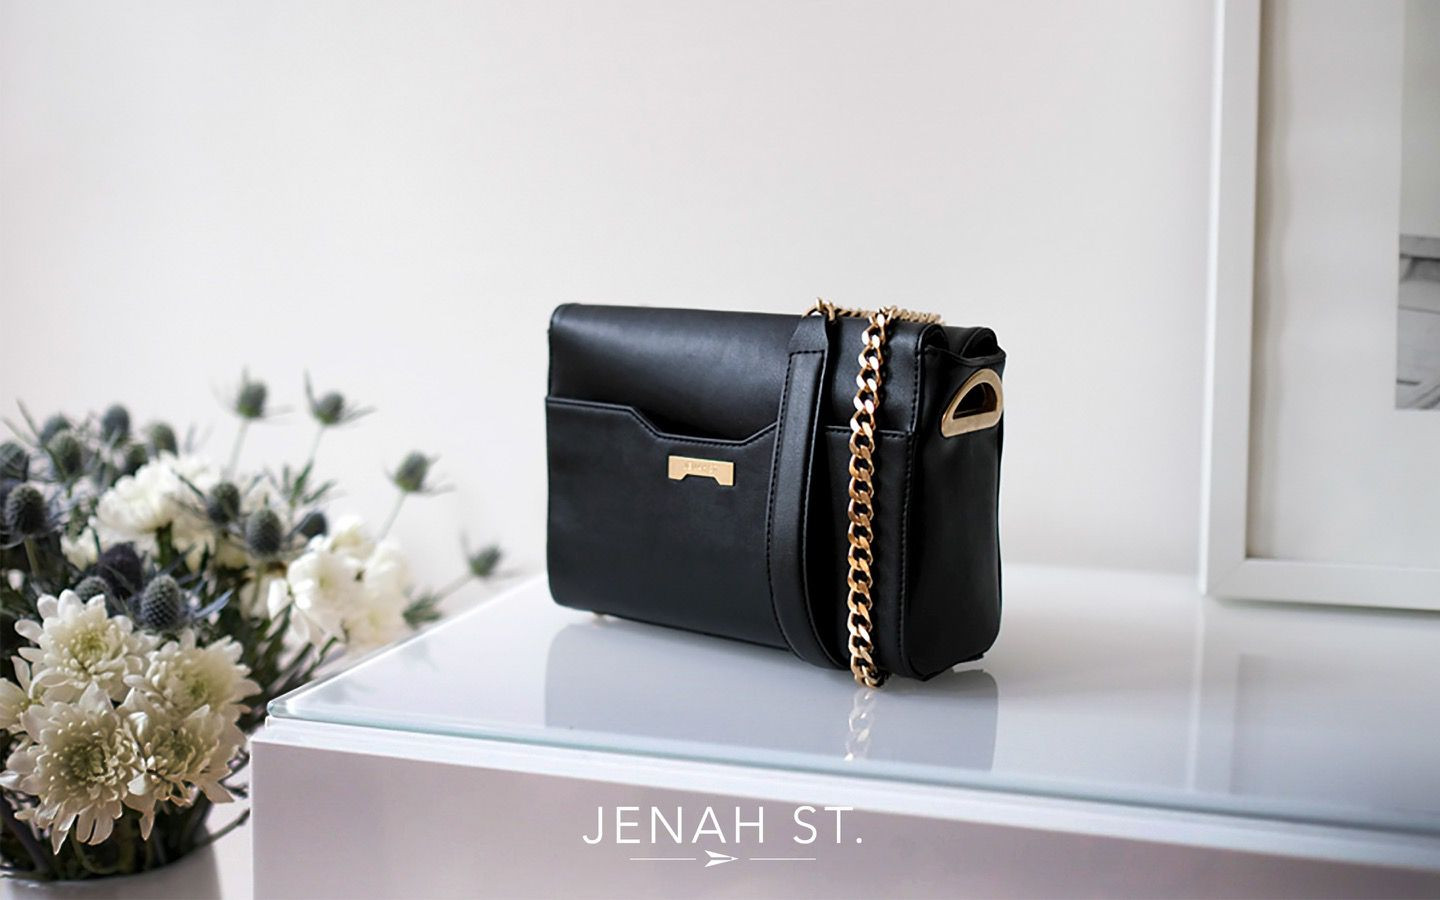 Jenah St. Vegan Handbags